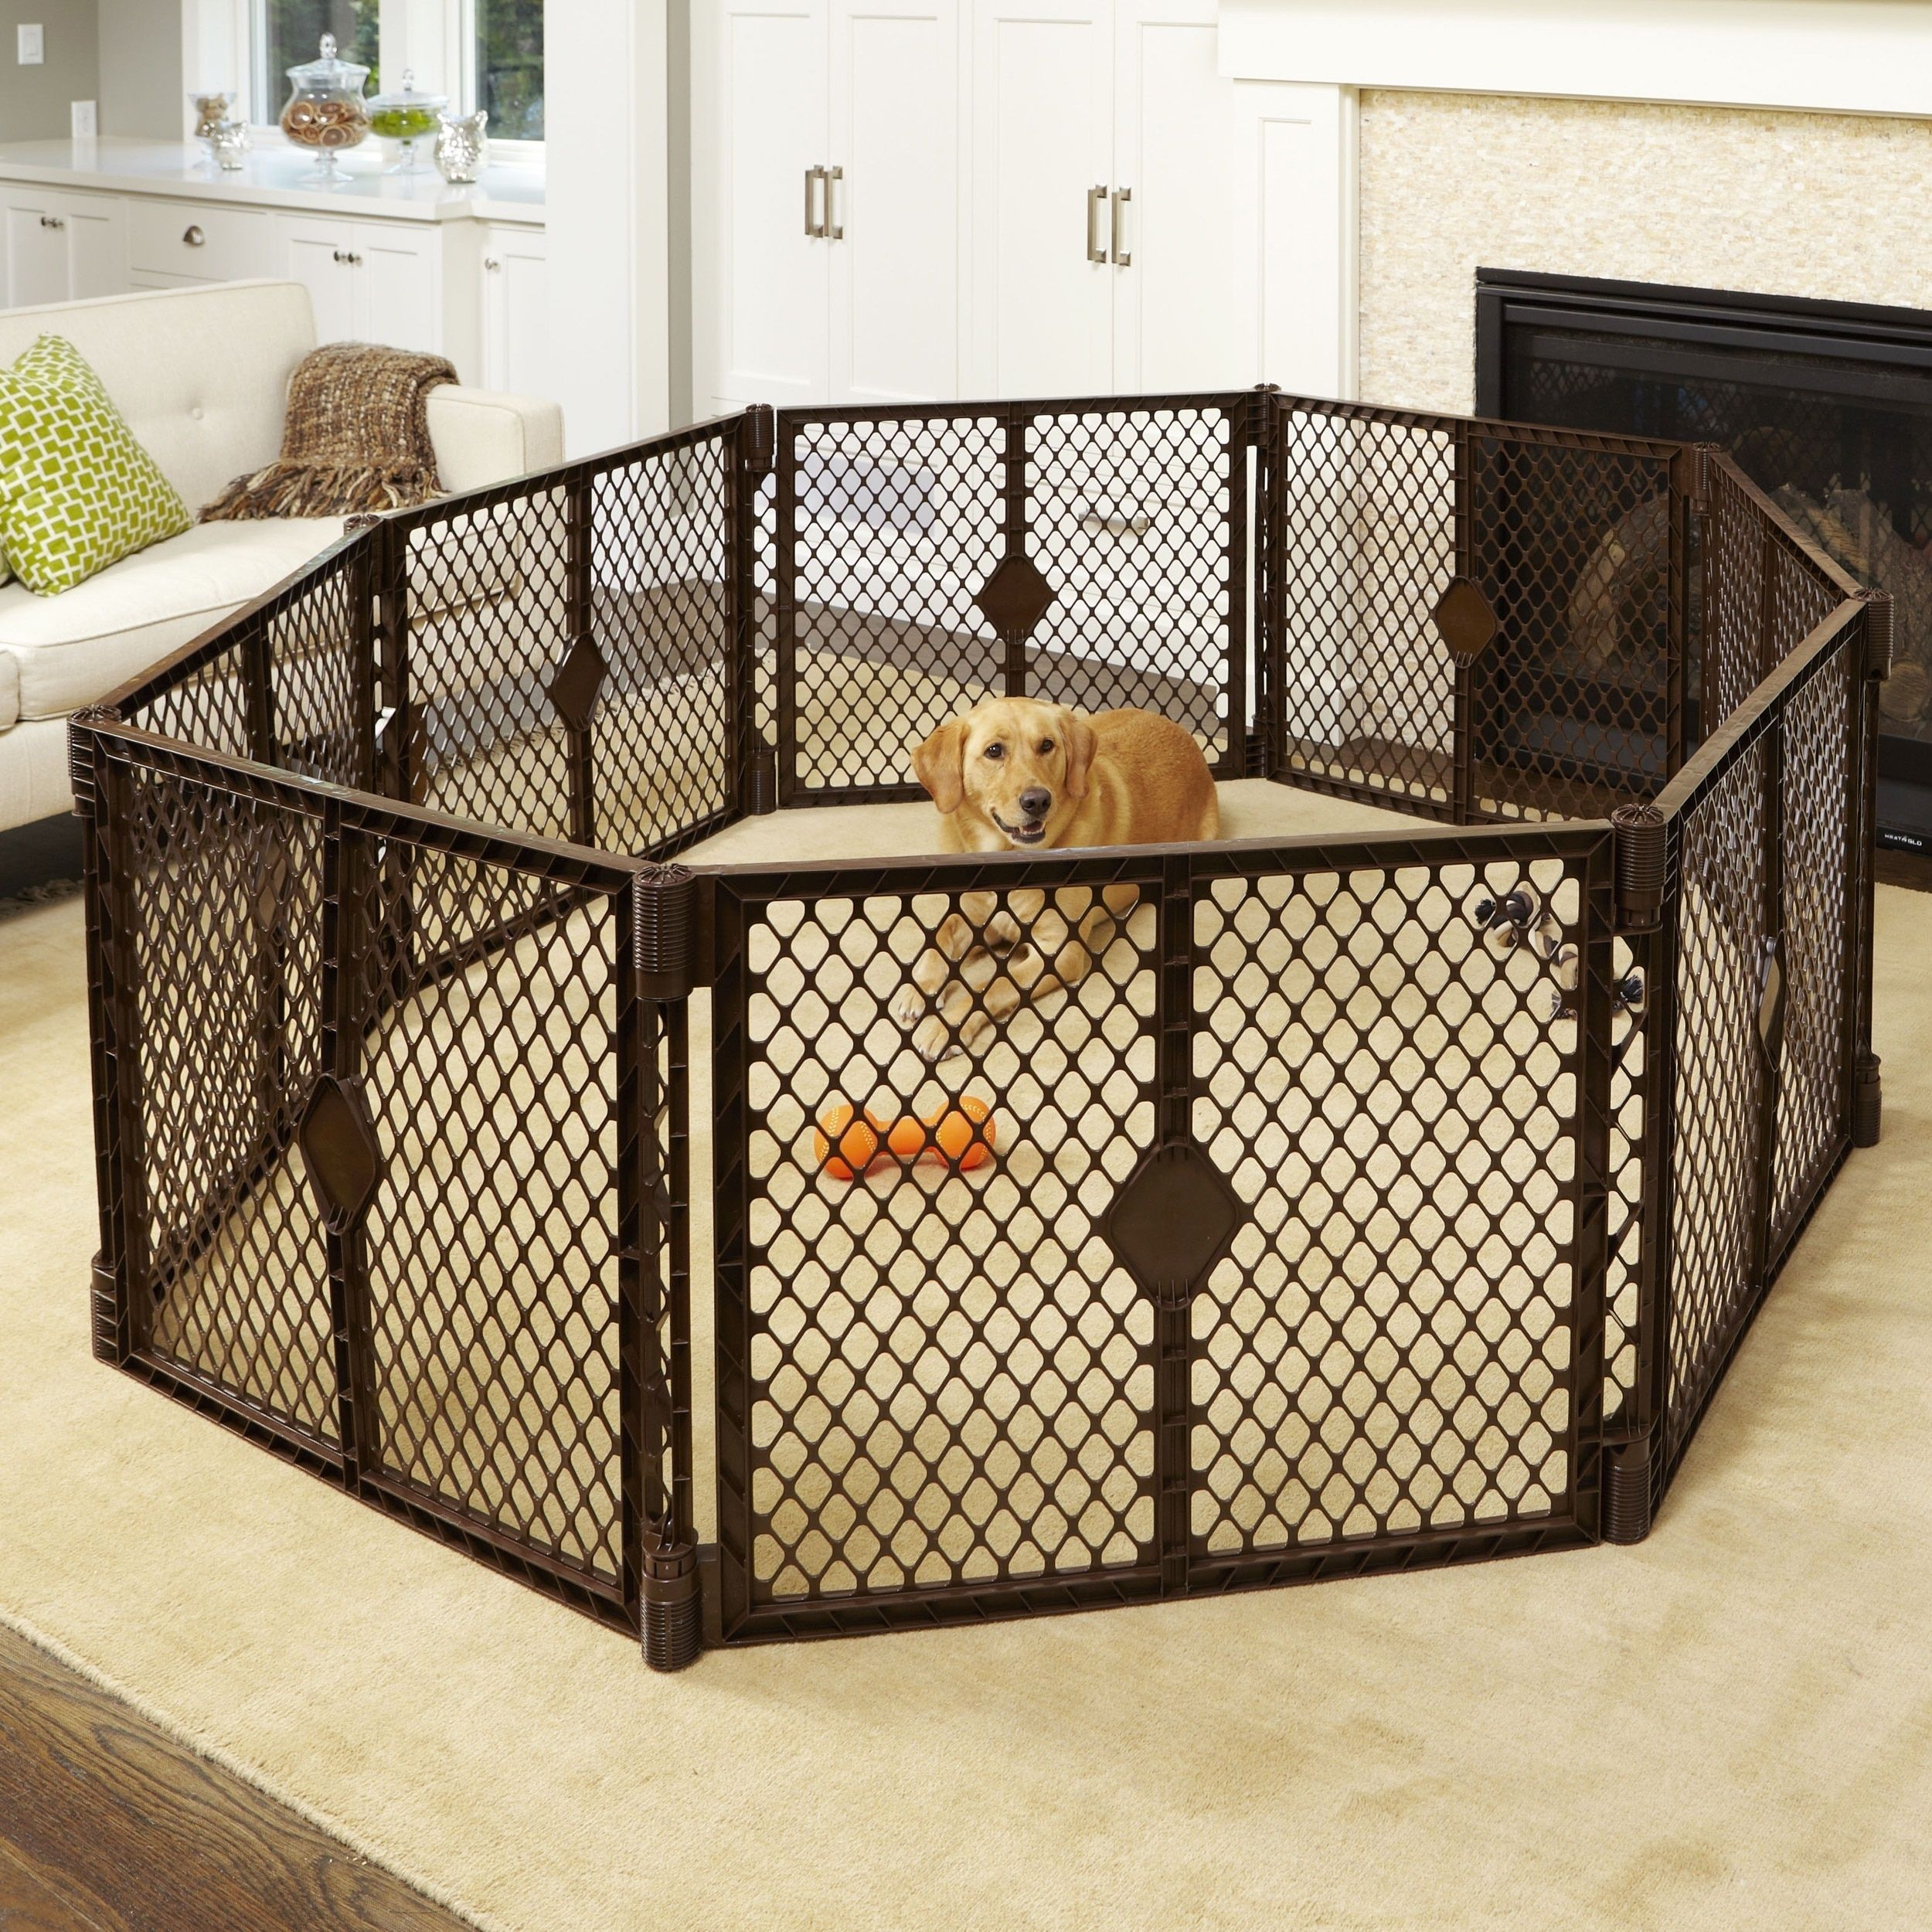 North States Stages Indoor Outdoor Petyard Pet Playpen